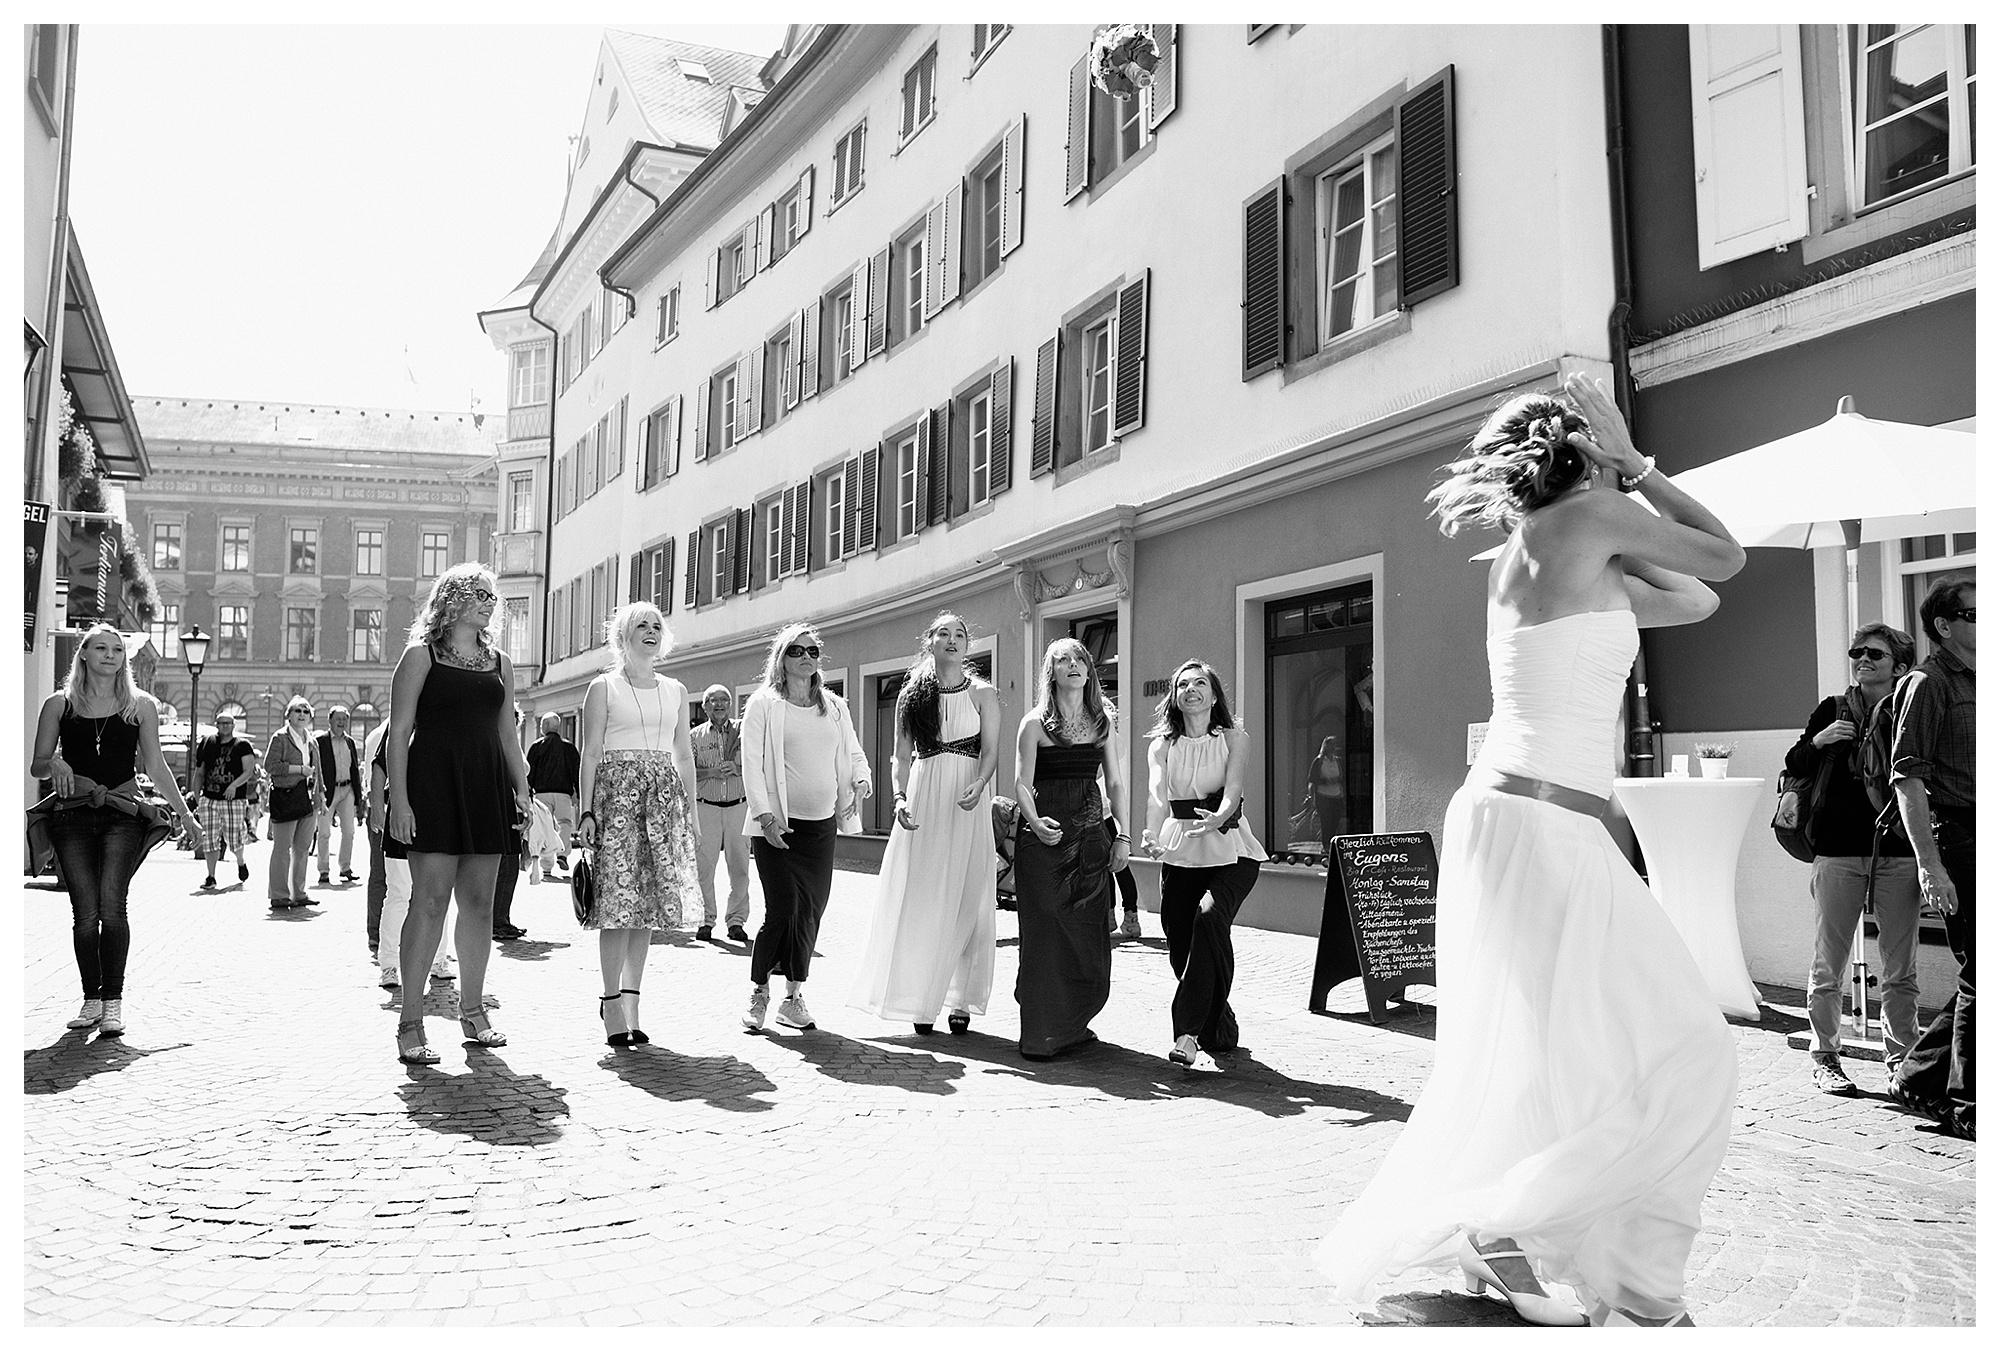 Fotograf Konstanz - Hochzeitsreportage Konstanz Raphael Nicole Elmar Feuerbacher Photography Hochzeit Portrait 33 - Wedding in Constance at Lake of Constance  - 53 -